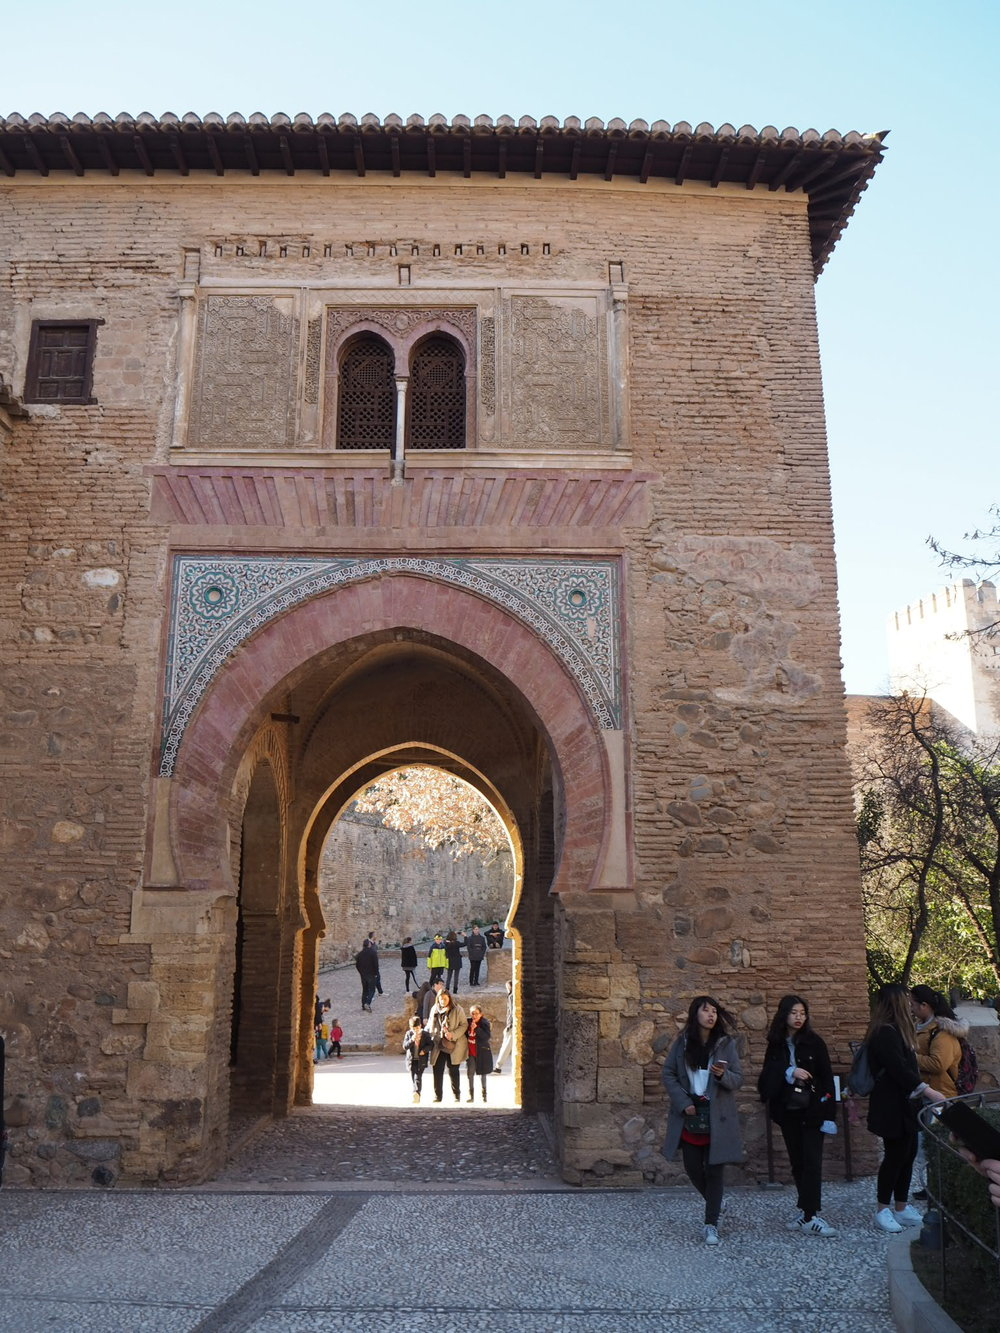 Puerta del vino is one of the oldest constructions at the Alhambra.